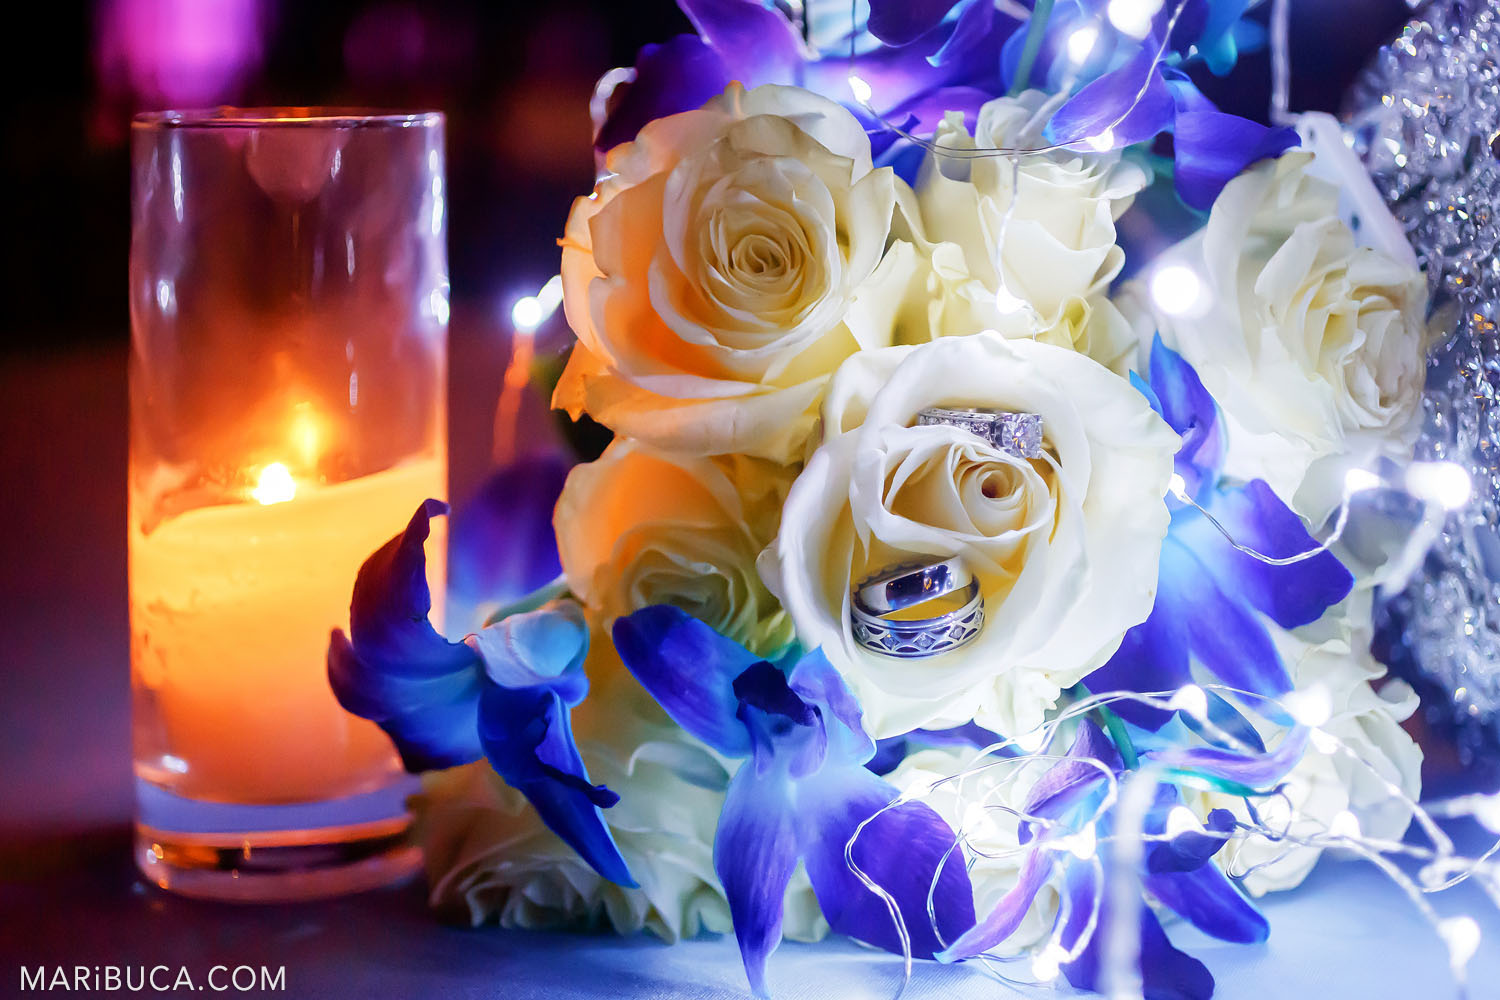 Wedding and engagement rings and engagement ring lie inside a rose flower surrounded orange candle in the glass and white roses and navy flowers.